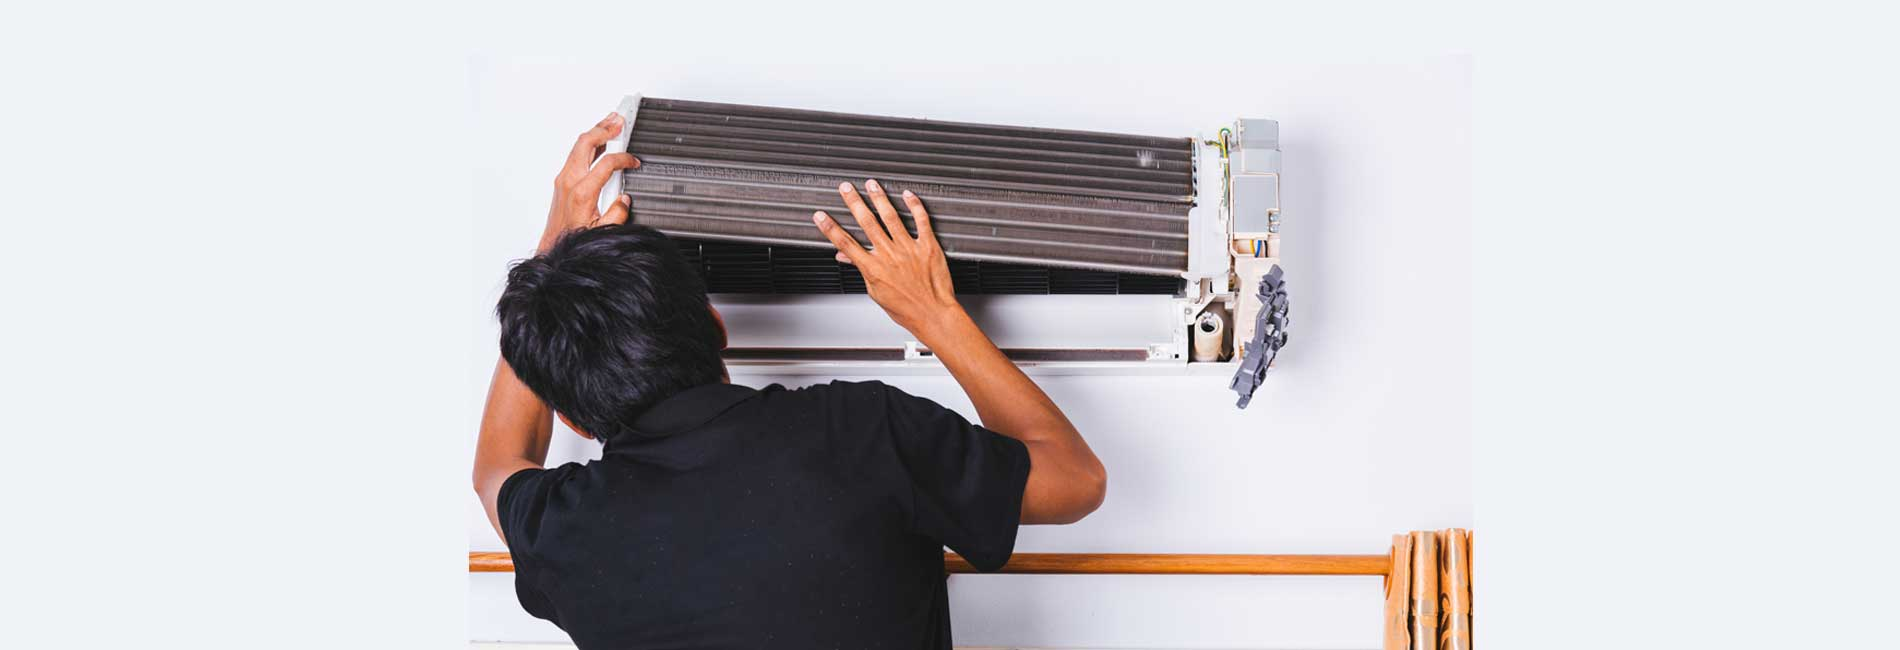 Air Condition Service in Madhavaram